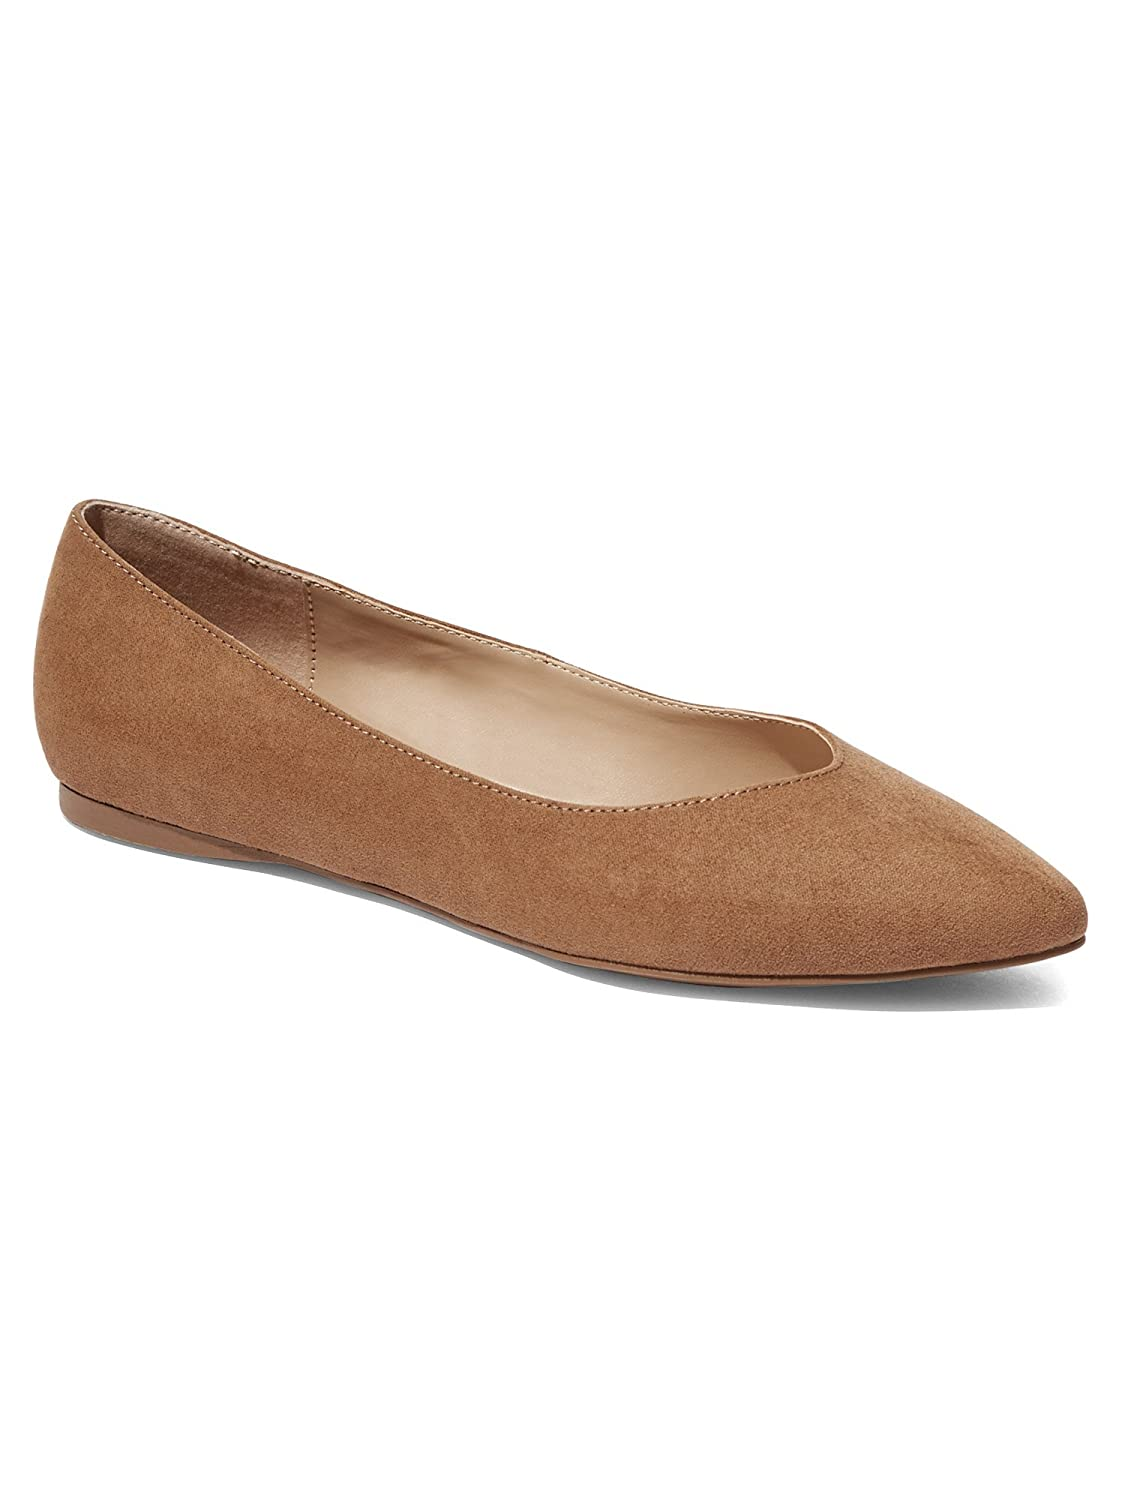 Womens Pointed-Toe Flat New York /& Co